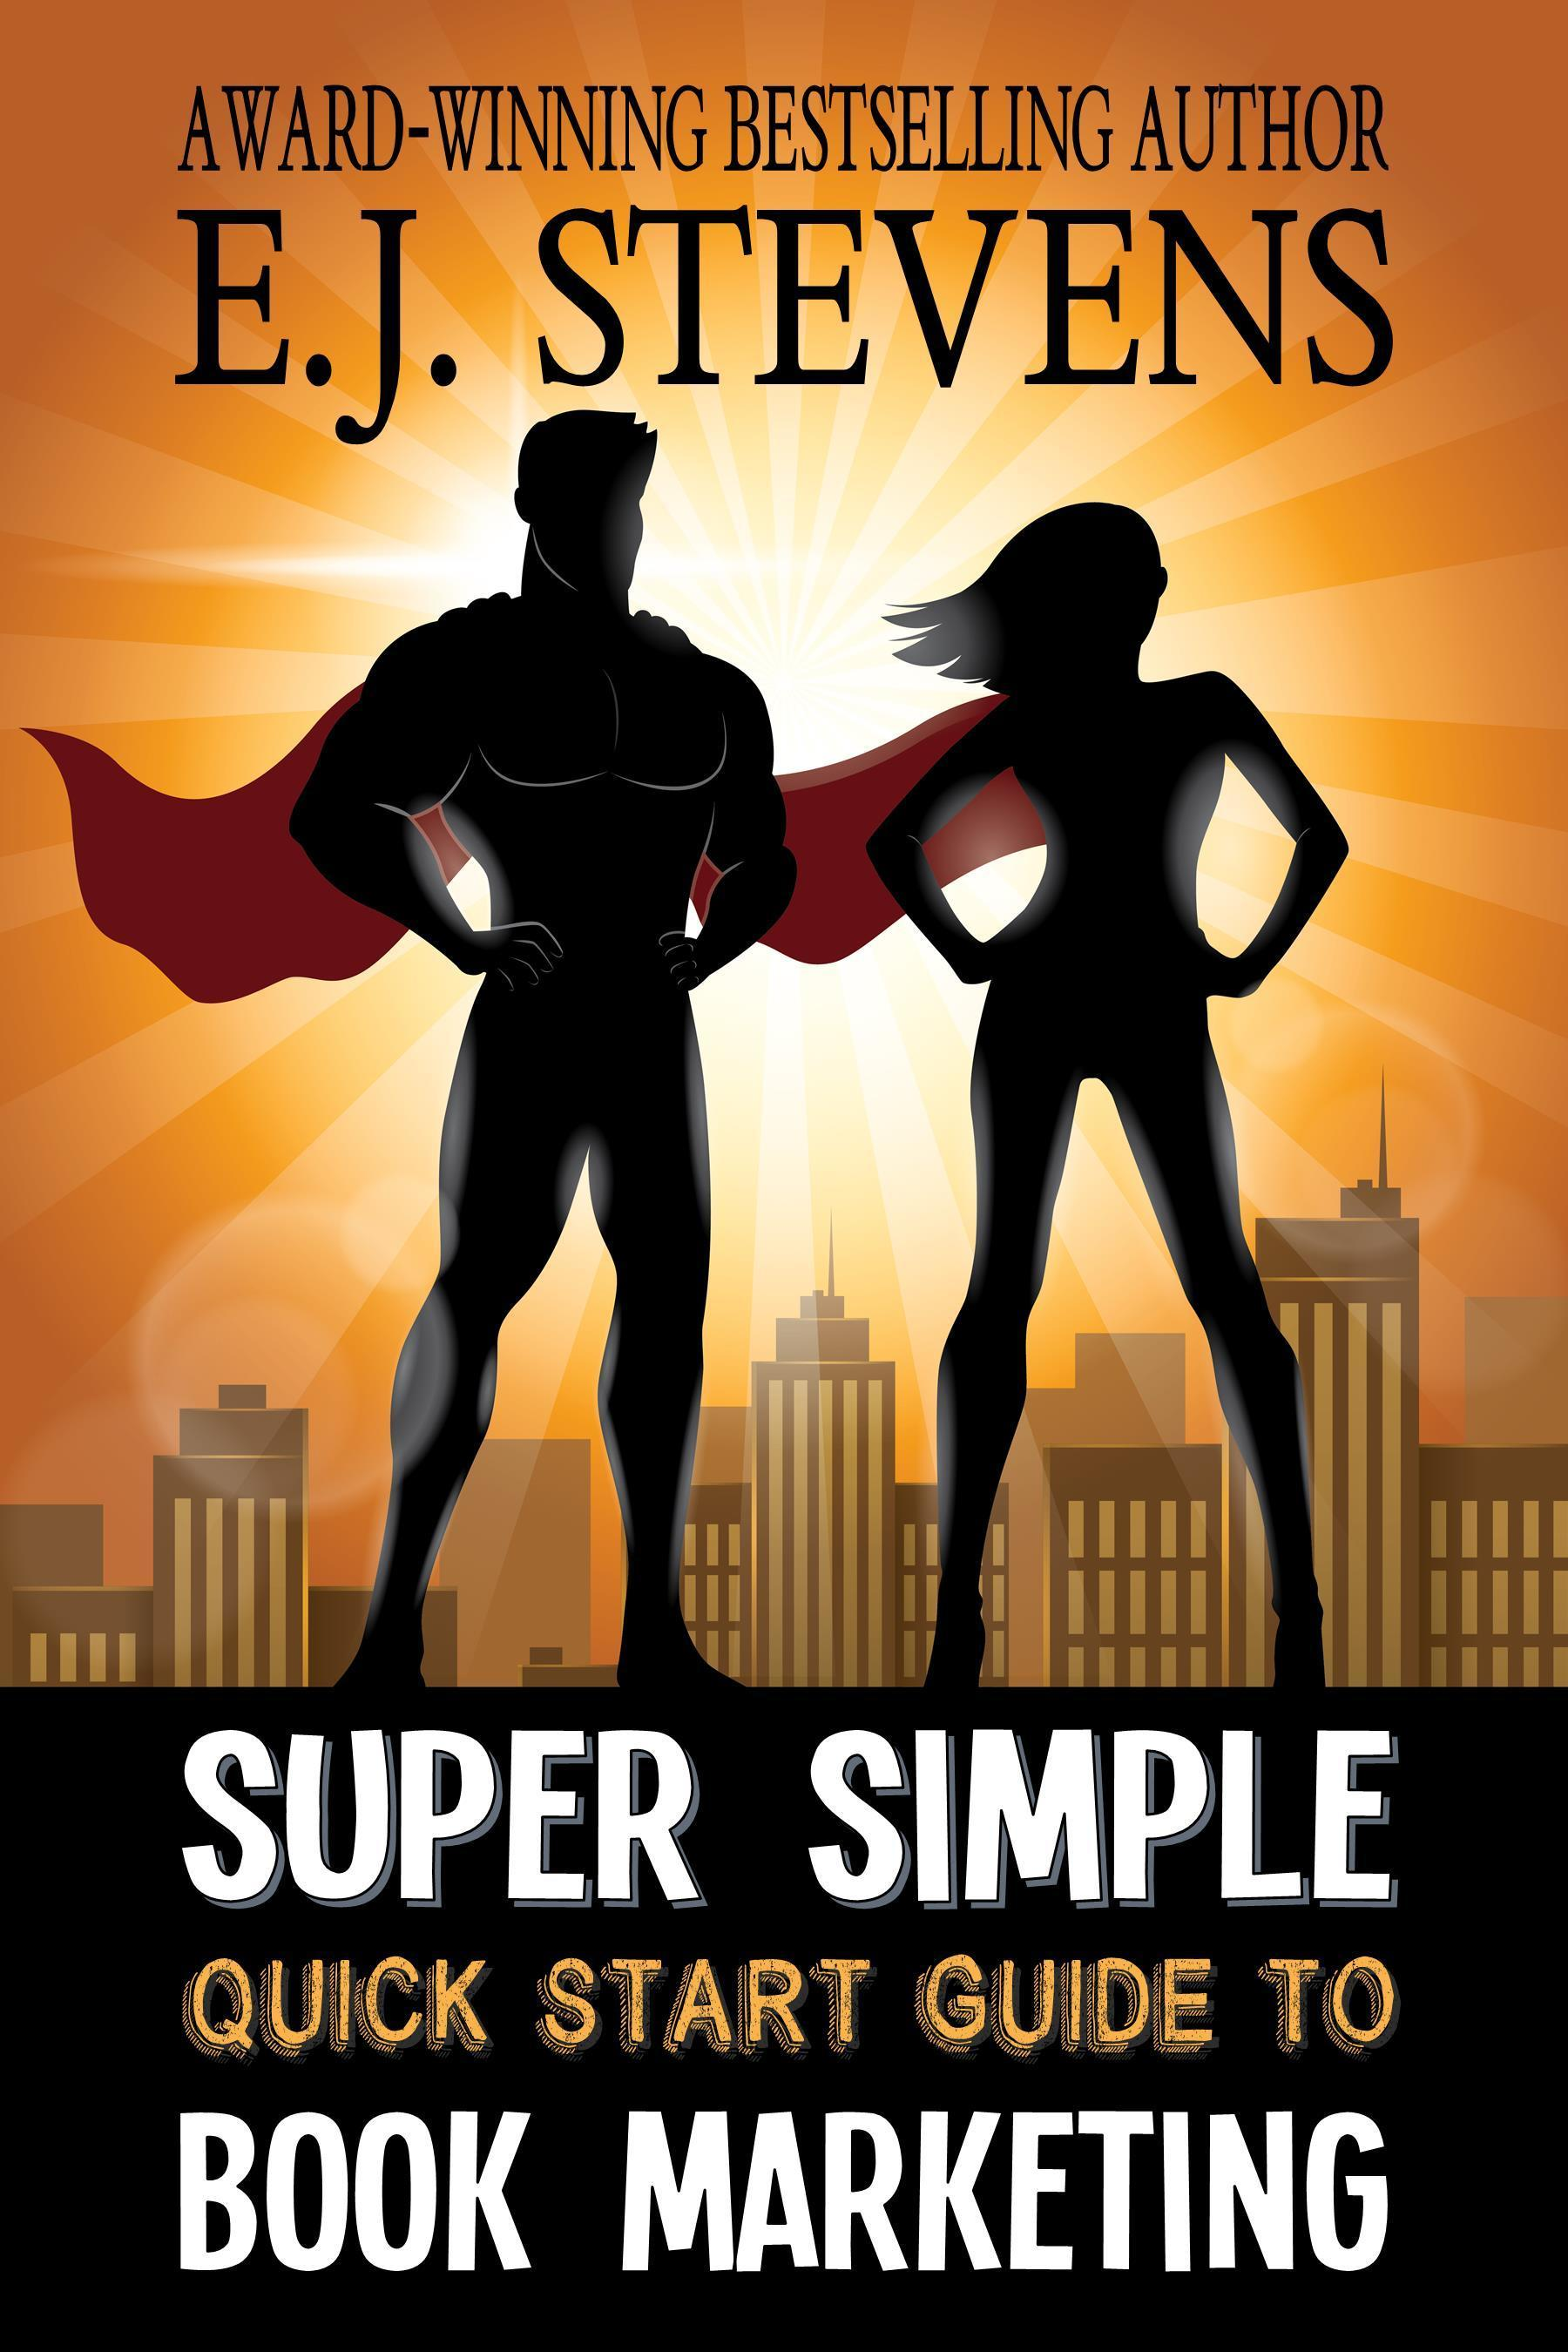 Super Simple Quick Start Guide to Book Marketing E.J. Stevens